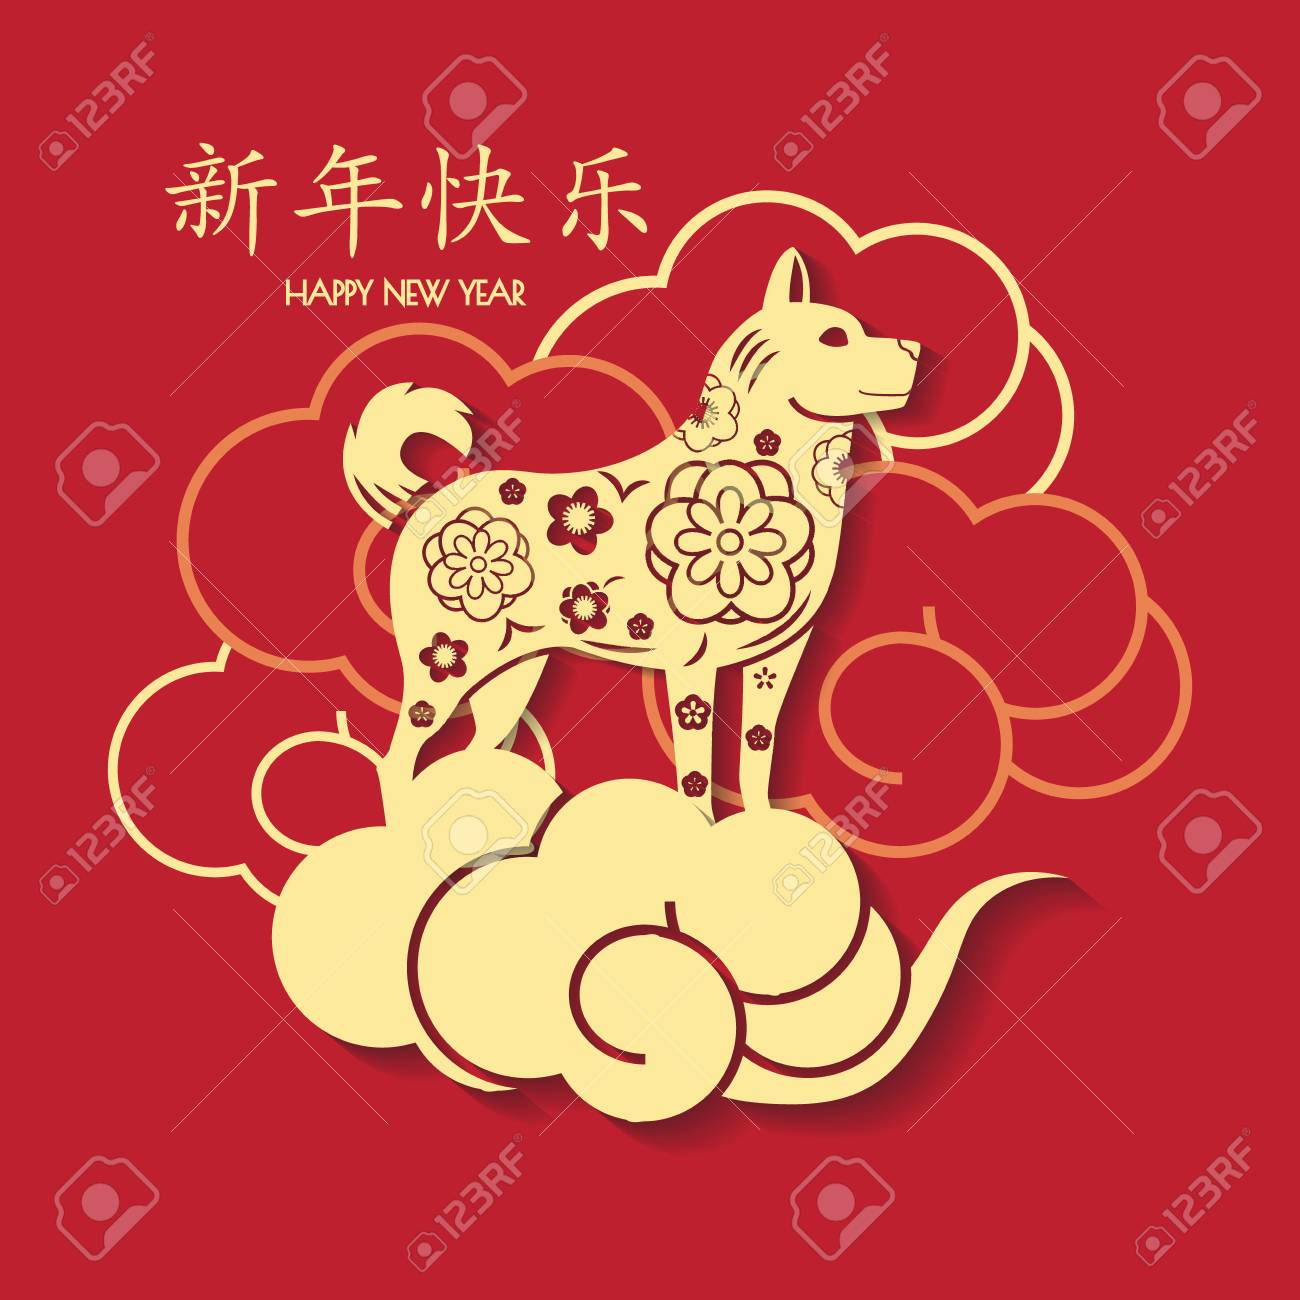 2018 chinese new year background with year of dog vector design stock vector 92862783